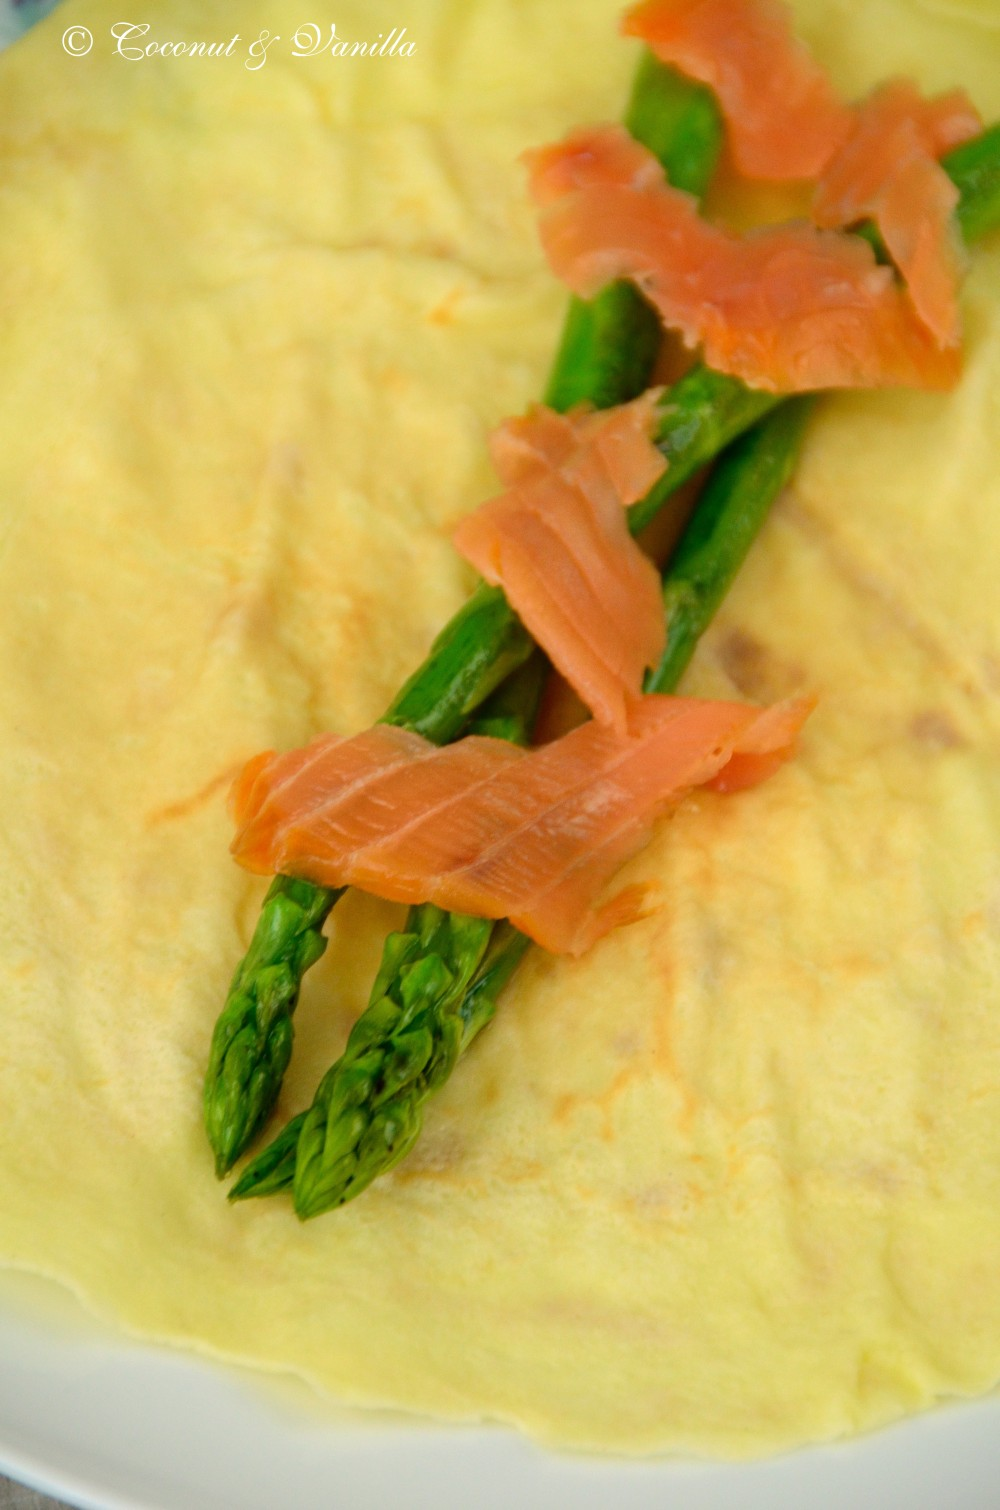 Crêpes with marinated green asparagus and smoked salmon